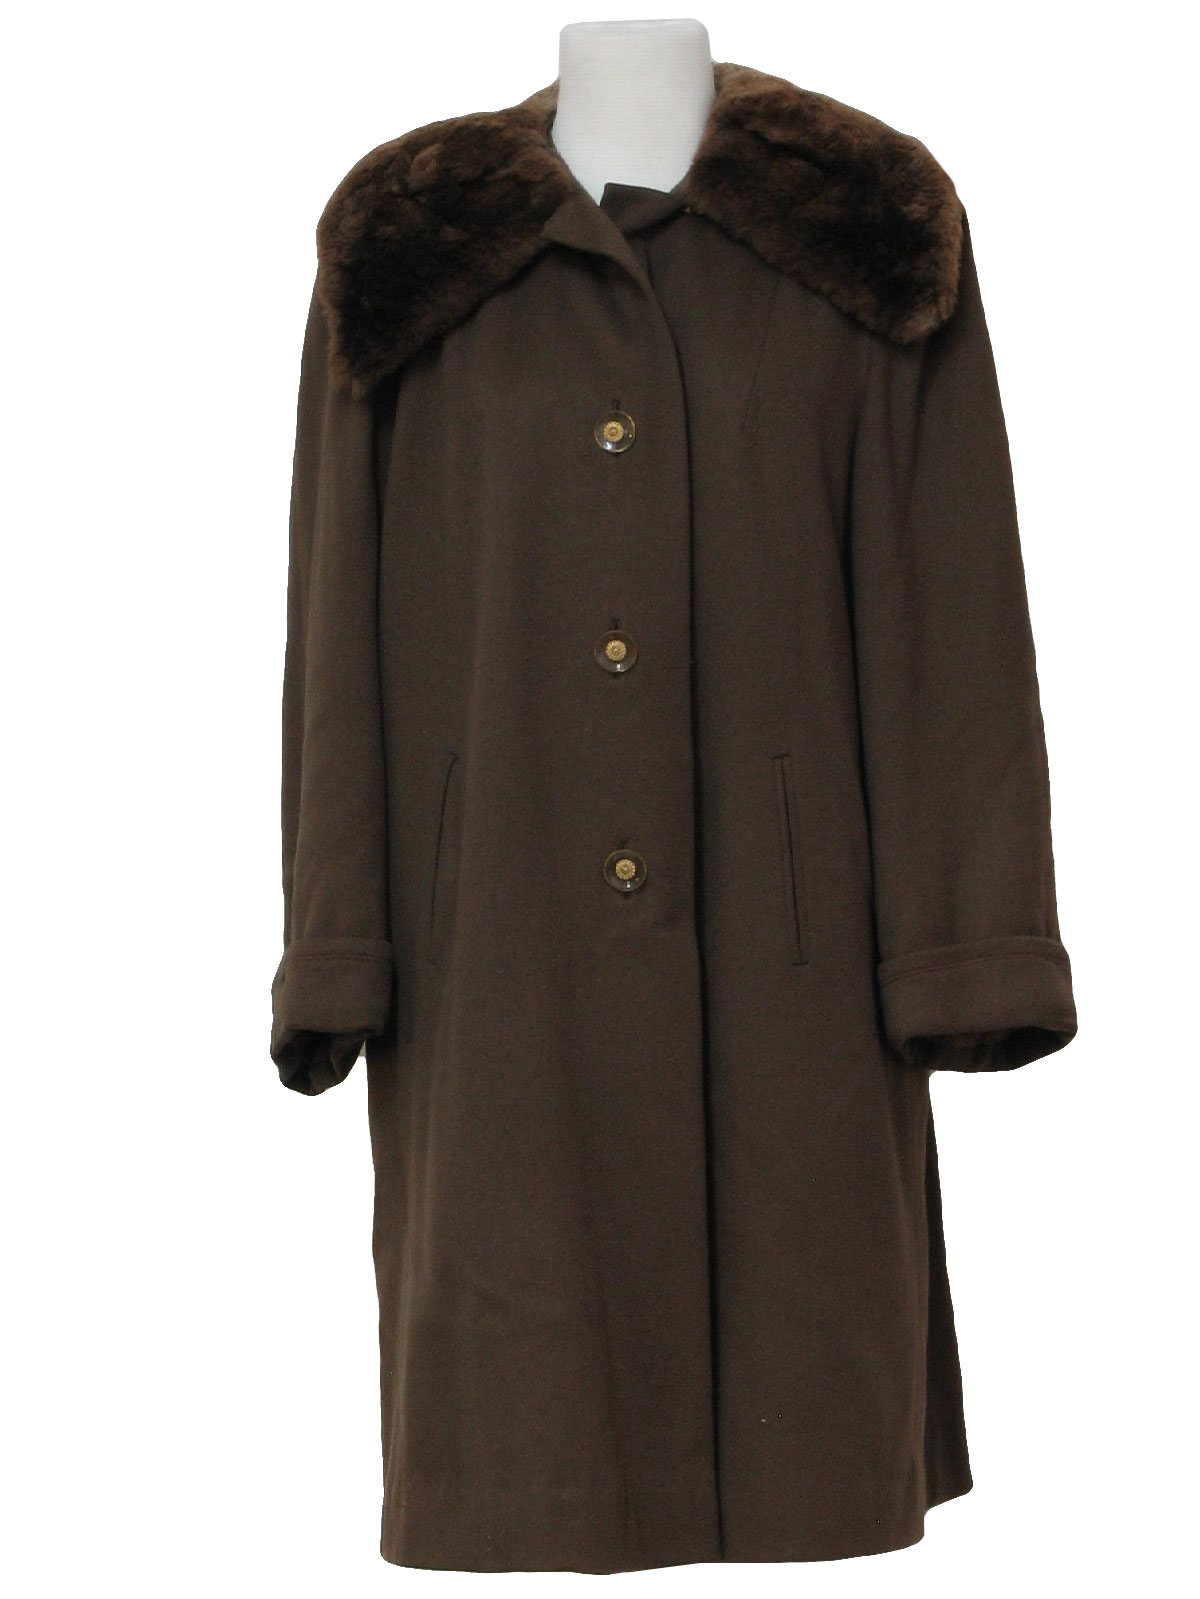 Retro 50s Jacket (Macys)  50s -Macys- Womens Dark Taupe And Shades Of Brown Wool Blend With ...